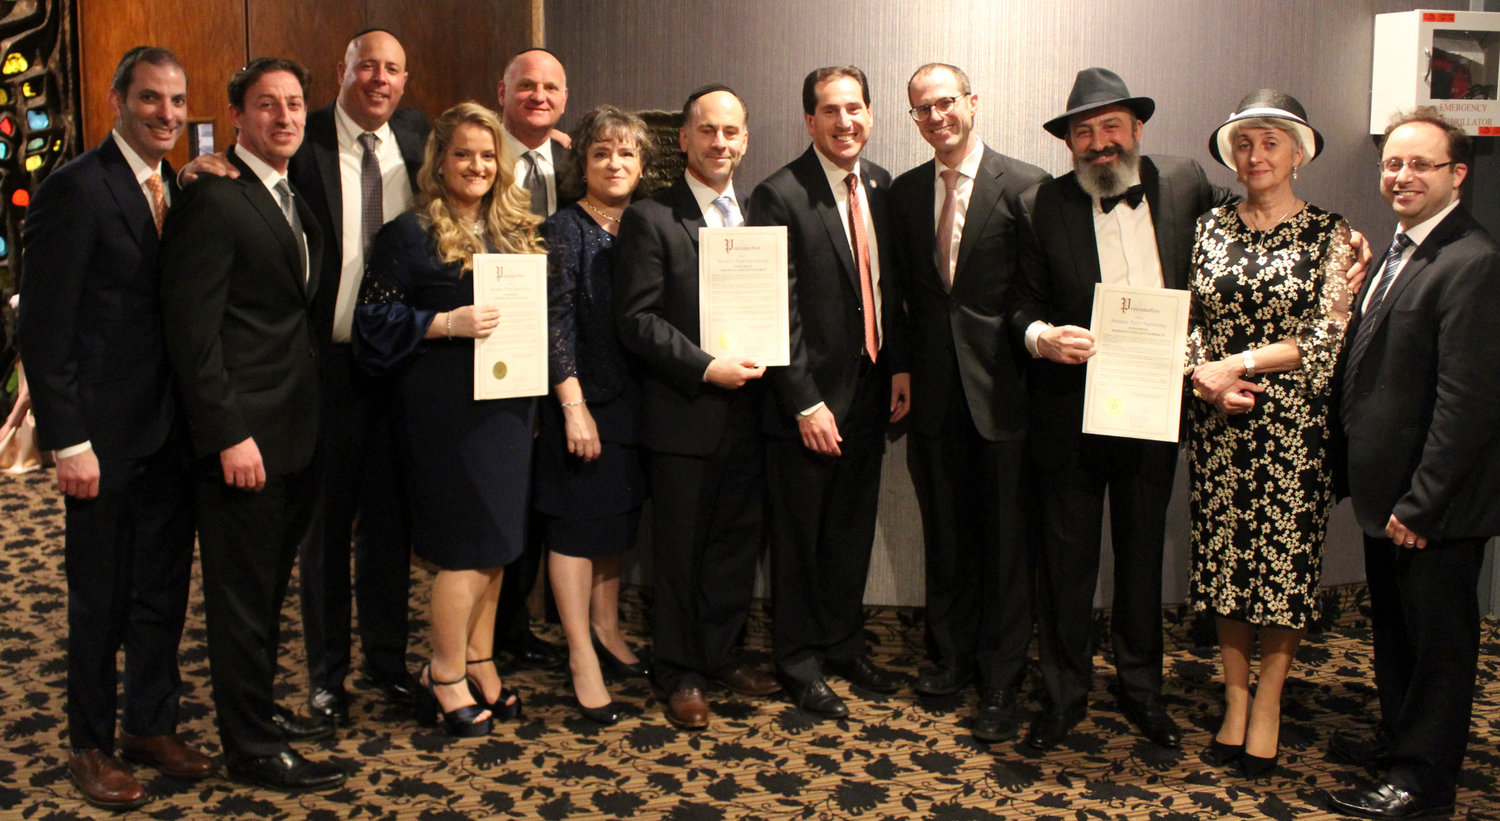 The Sephardic Temple hosted Young Israel of North Woodmere's annual dinner. From left were Jack Aspir, Alex Marcus, Zvi and Judith Gutman, Glen Skolnick, Michele and Eli Chaikin, State Sen. Todd Kaminsky, Rabbi Yehuda Septimus, Zev and Mariana Gorbach, and Yitzie Horowitz.